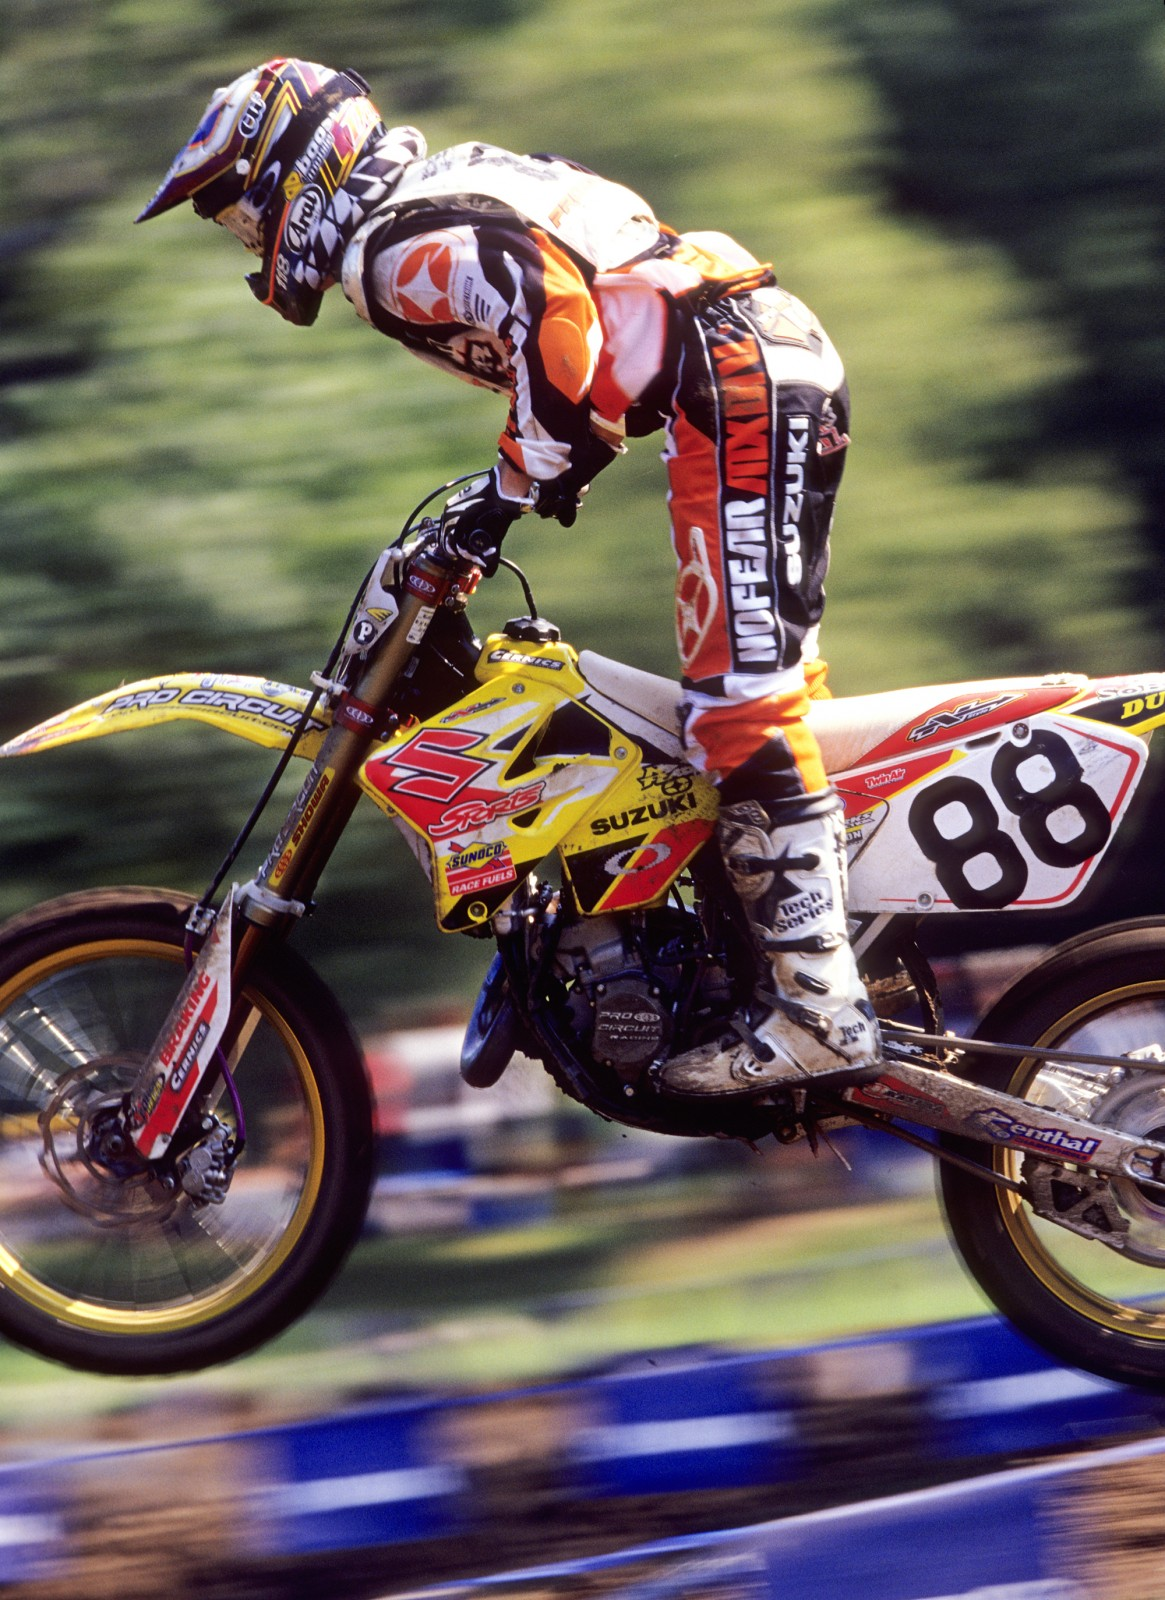 Millsaps won both of his classes in 2003. He turned pro in 2004.